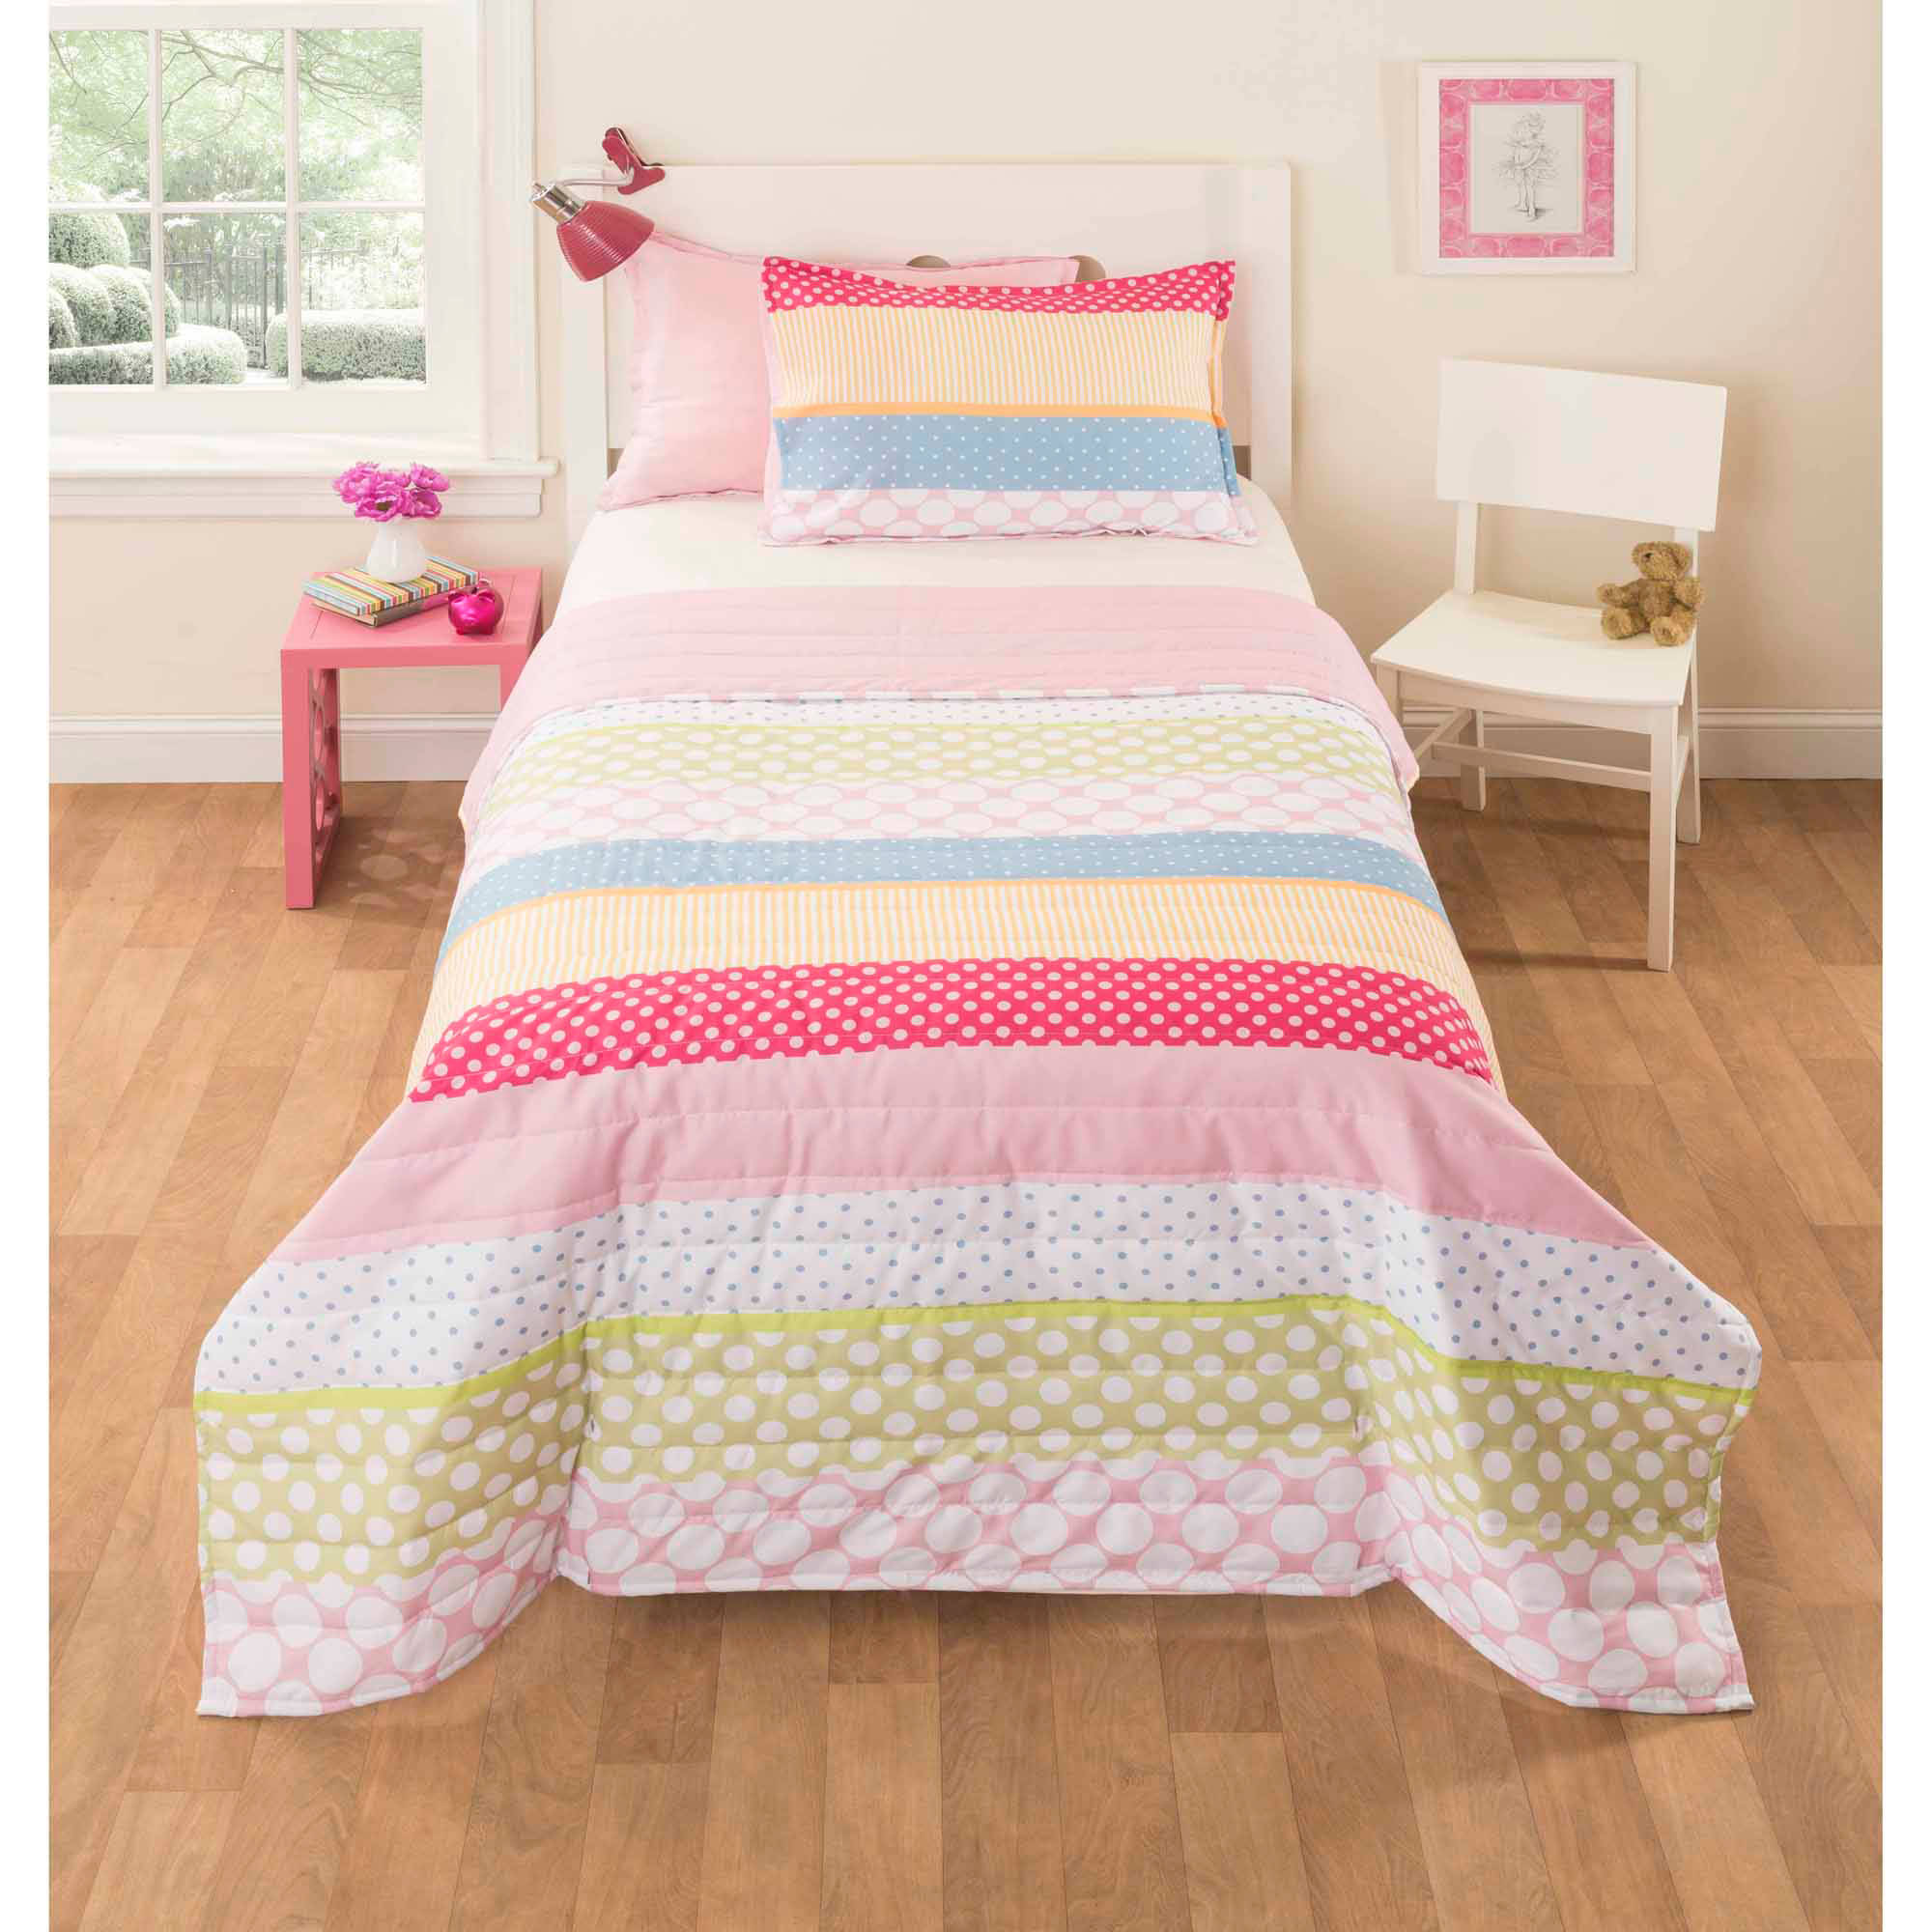 Mainstays Kids Pink Rally Bedding Comforter Set